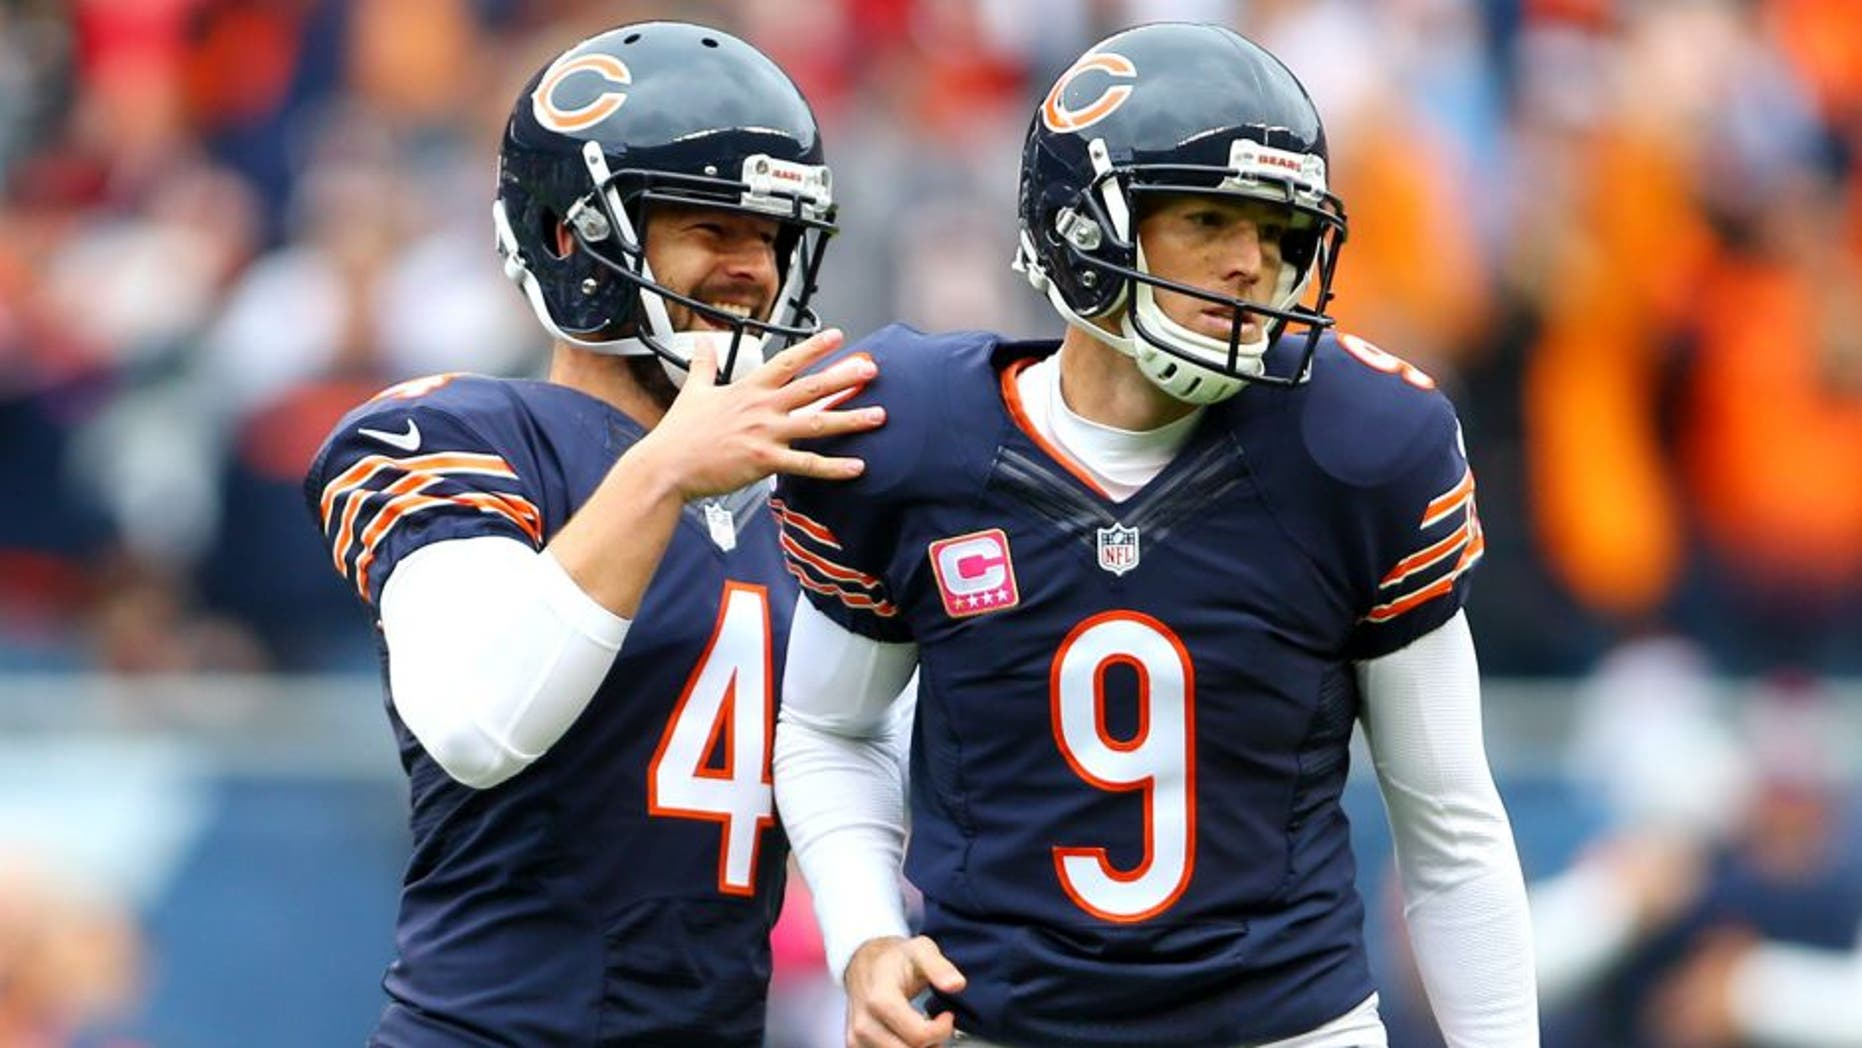 Oct 4, 2015; Chicago, IL, USA; Chicago Bears kicker Robbie Gould (9) celebrates with punter Spencer Lanning (4) ater kicking the winning field goal against the Oakland Raiders in the fourth quarter at Soldier Field. Mandatory Credit: Jerry Lai-USA TODAY Sports